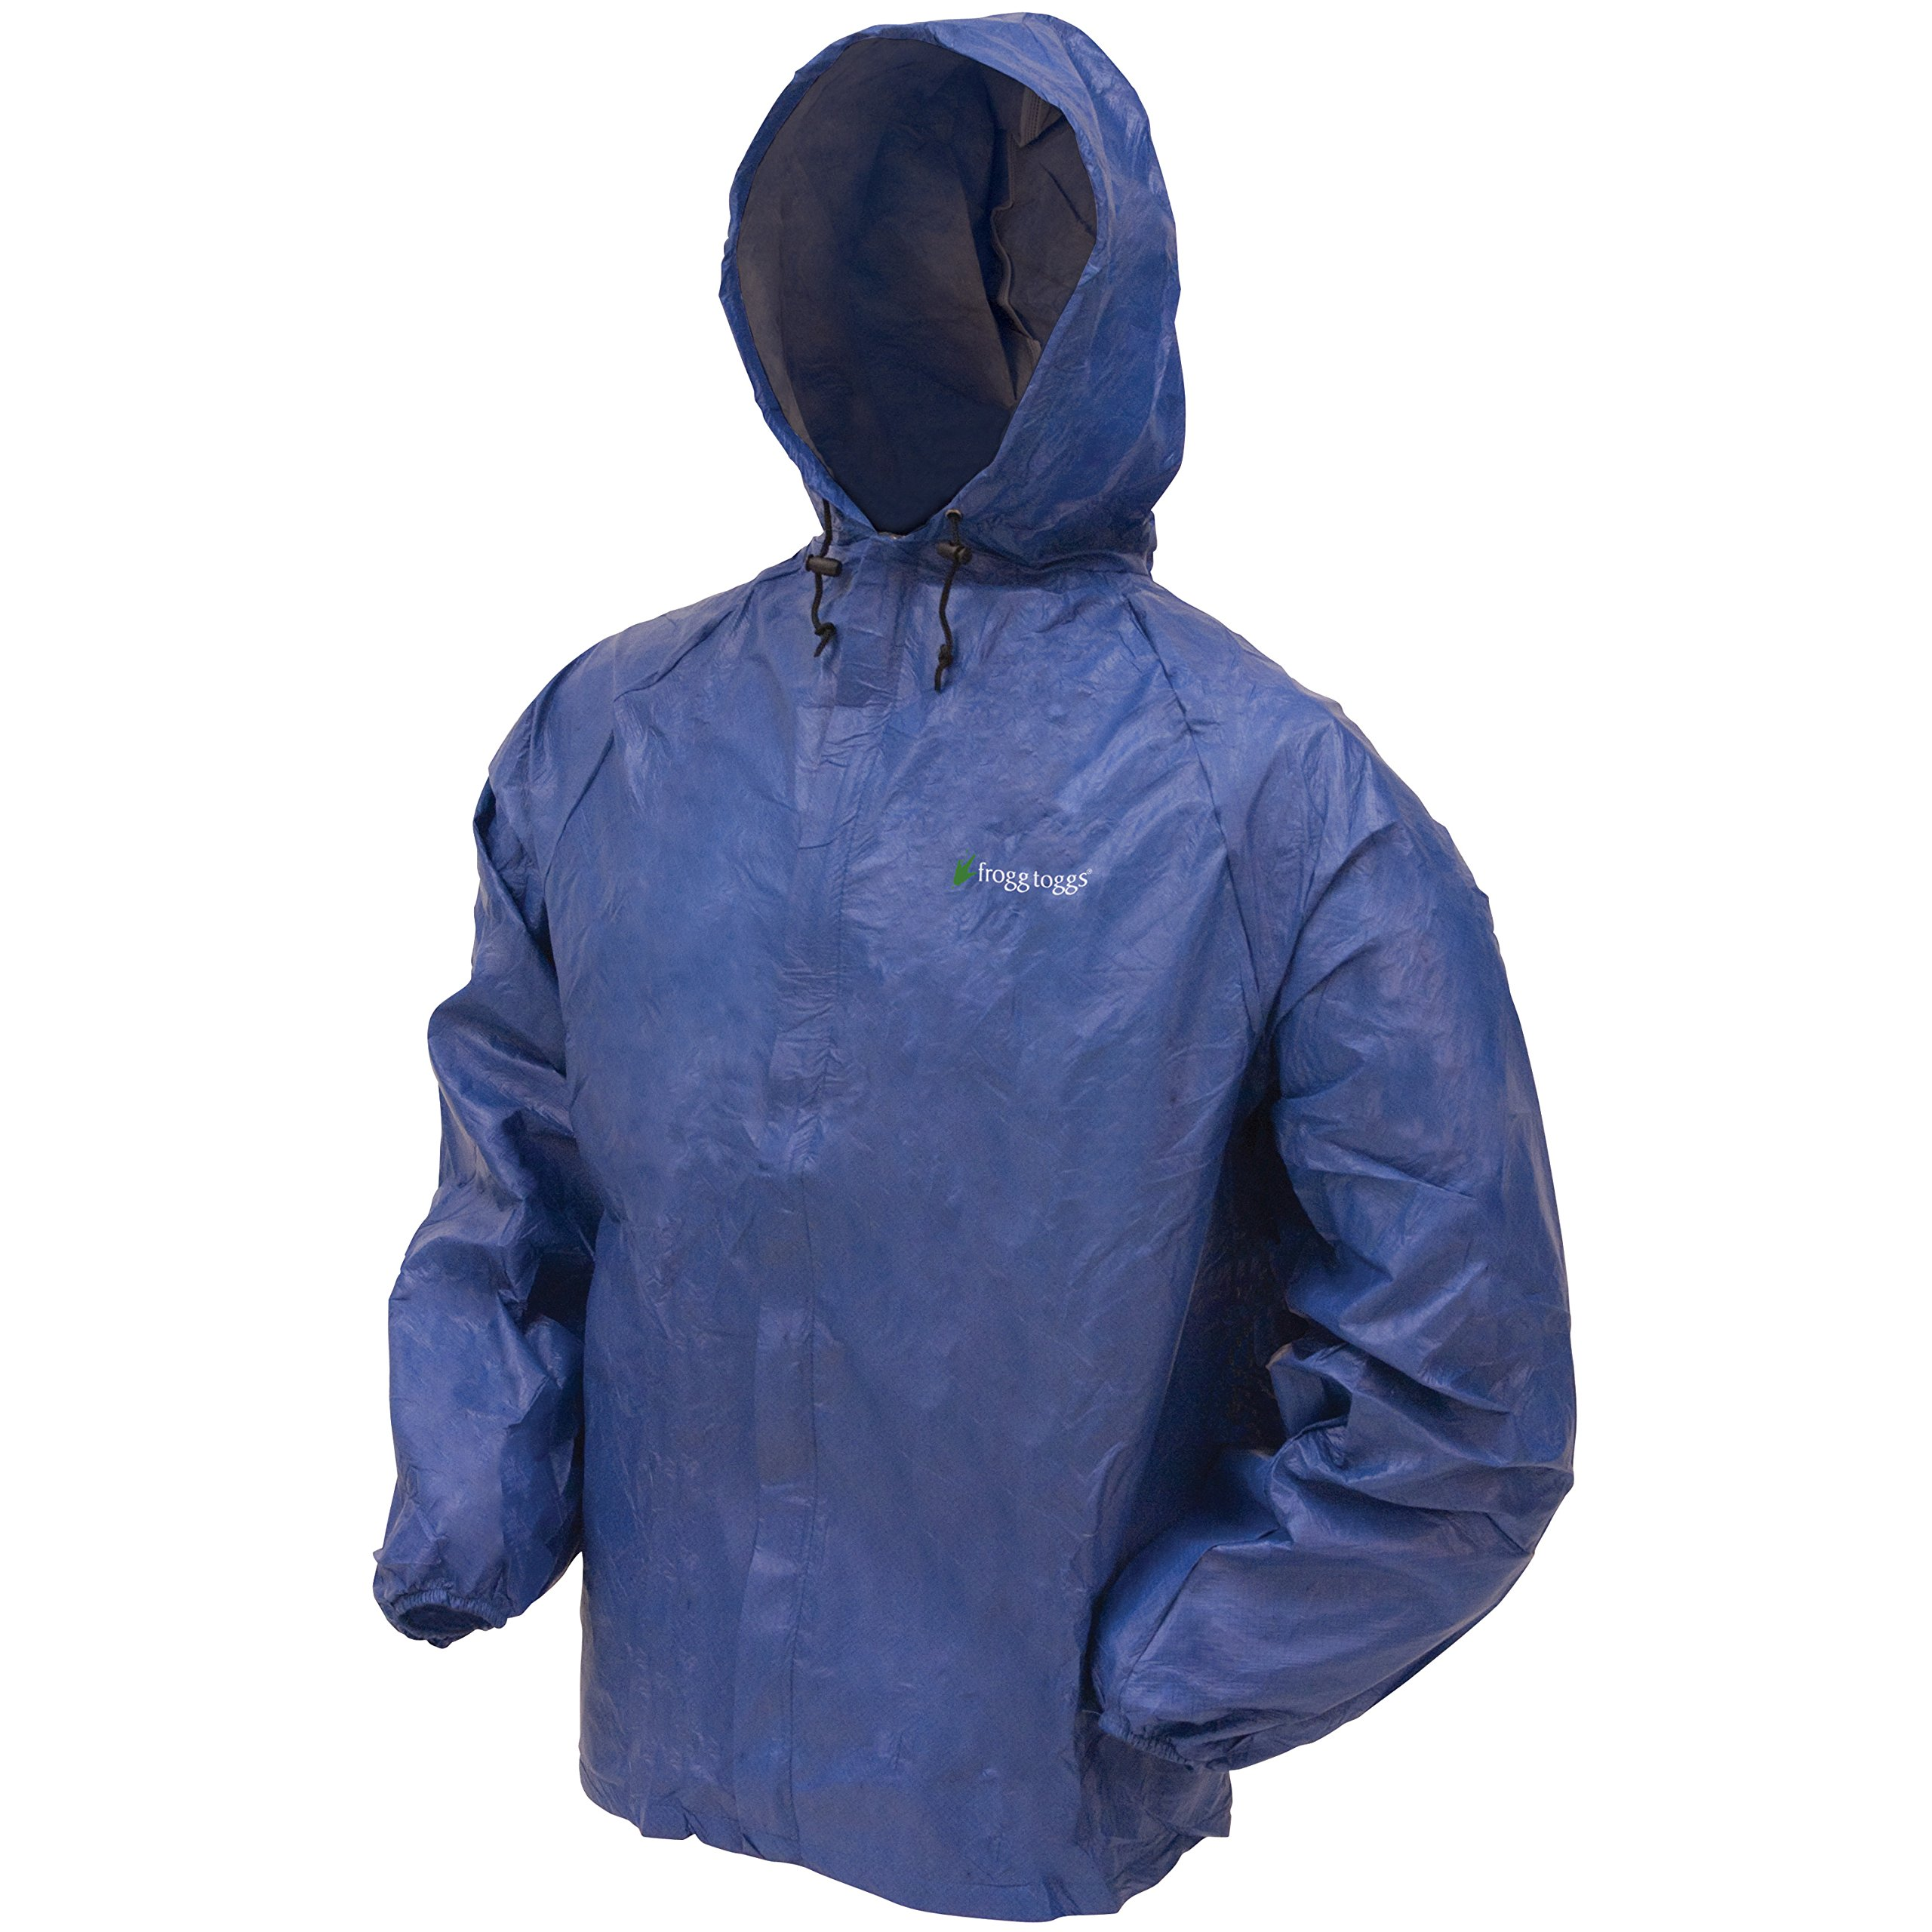 Frogg Toggs Men's Ultra Lite Rain Jacket, Blue, Large